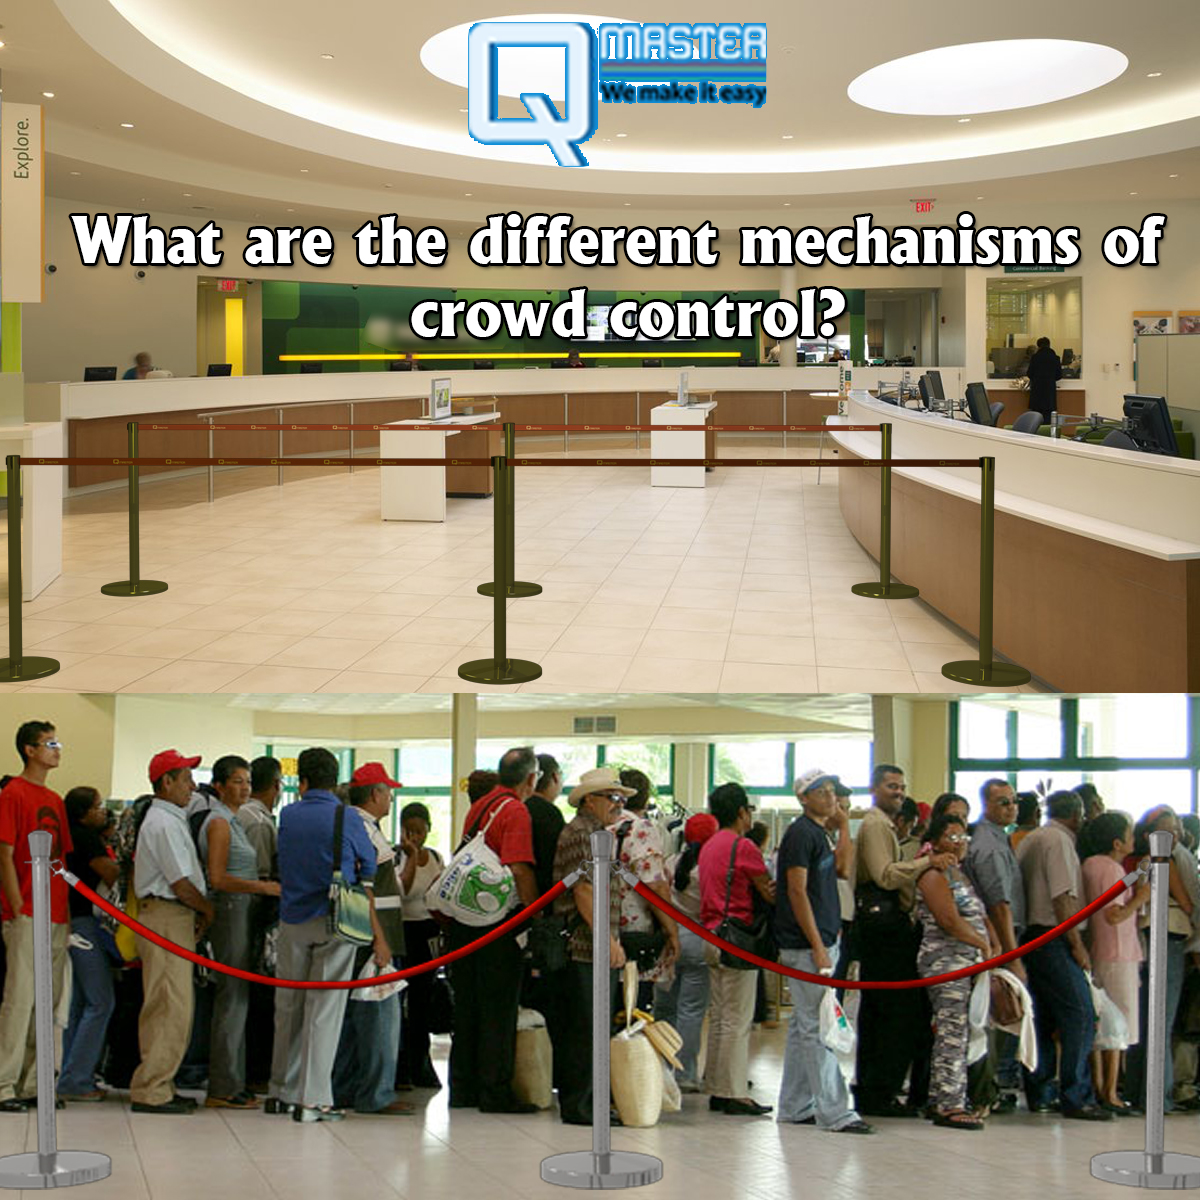 What are the different mechanisms of crowd control